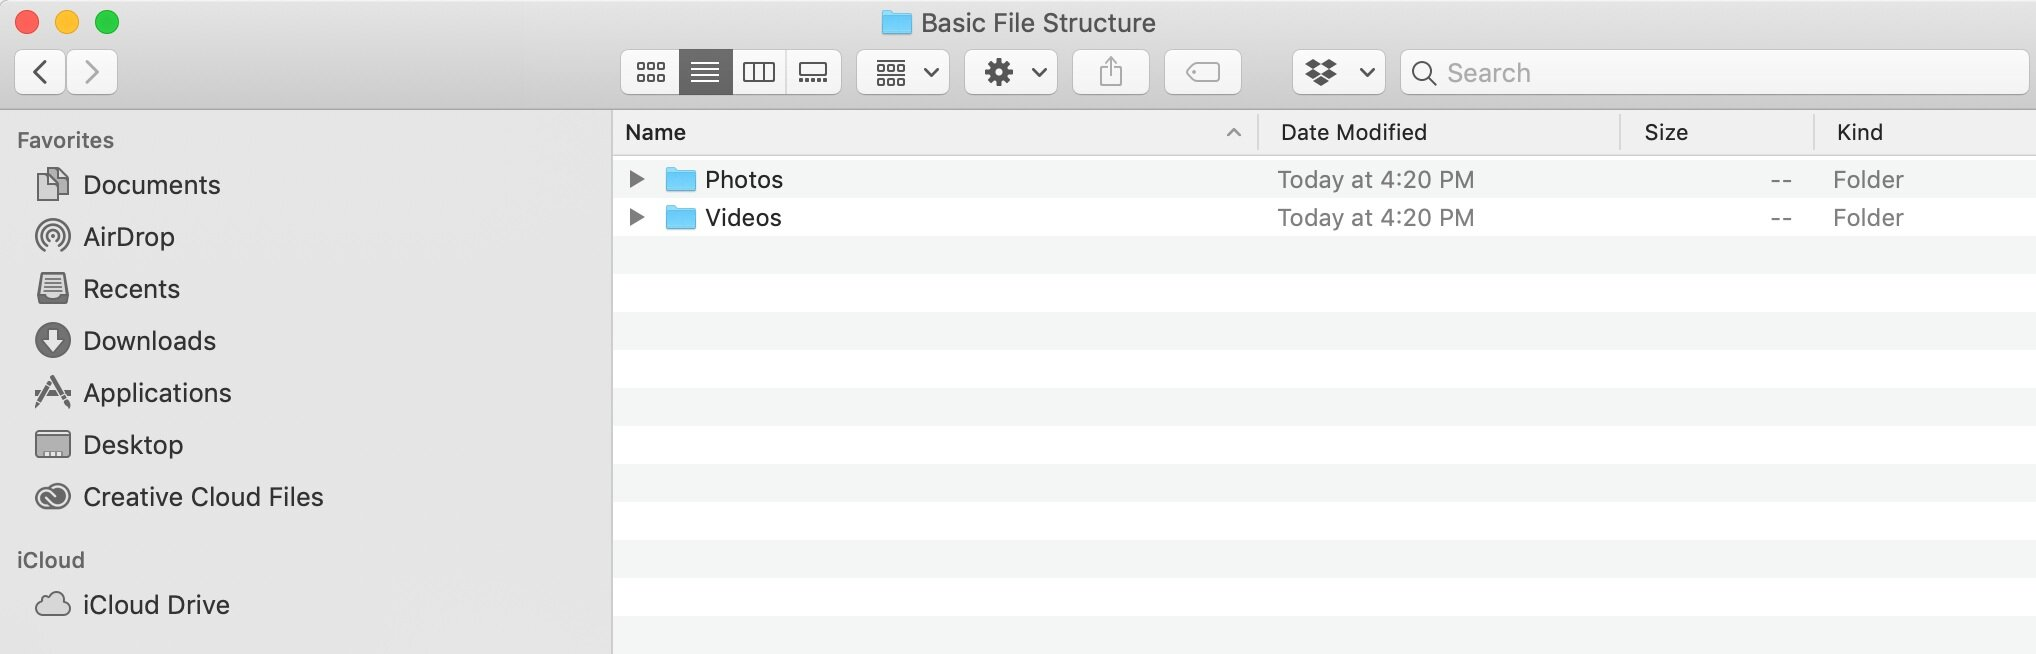 basic+file+structure